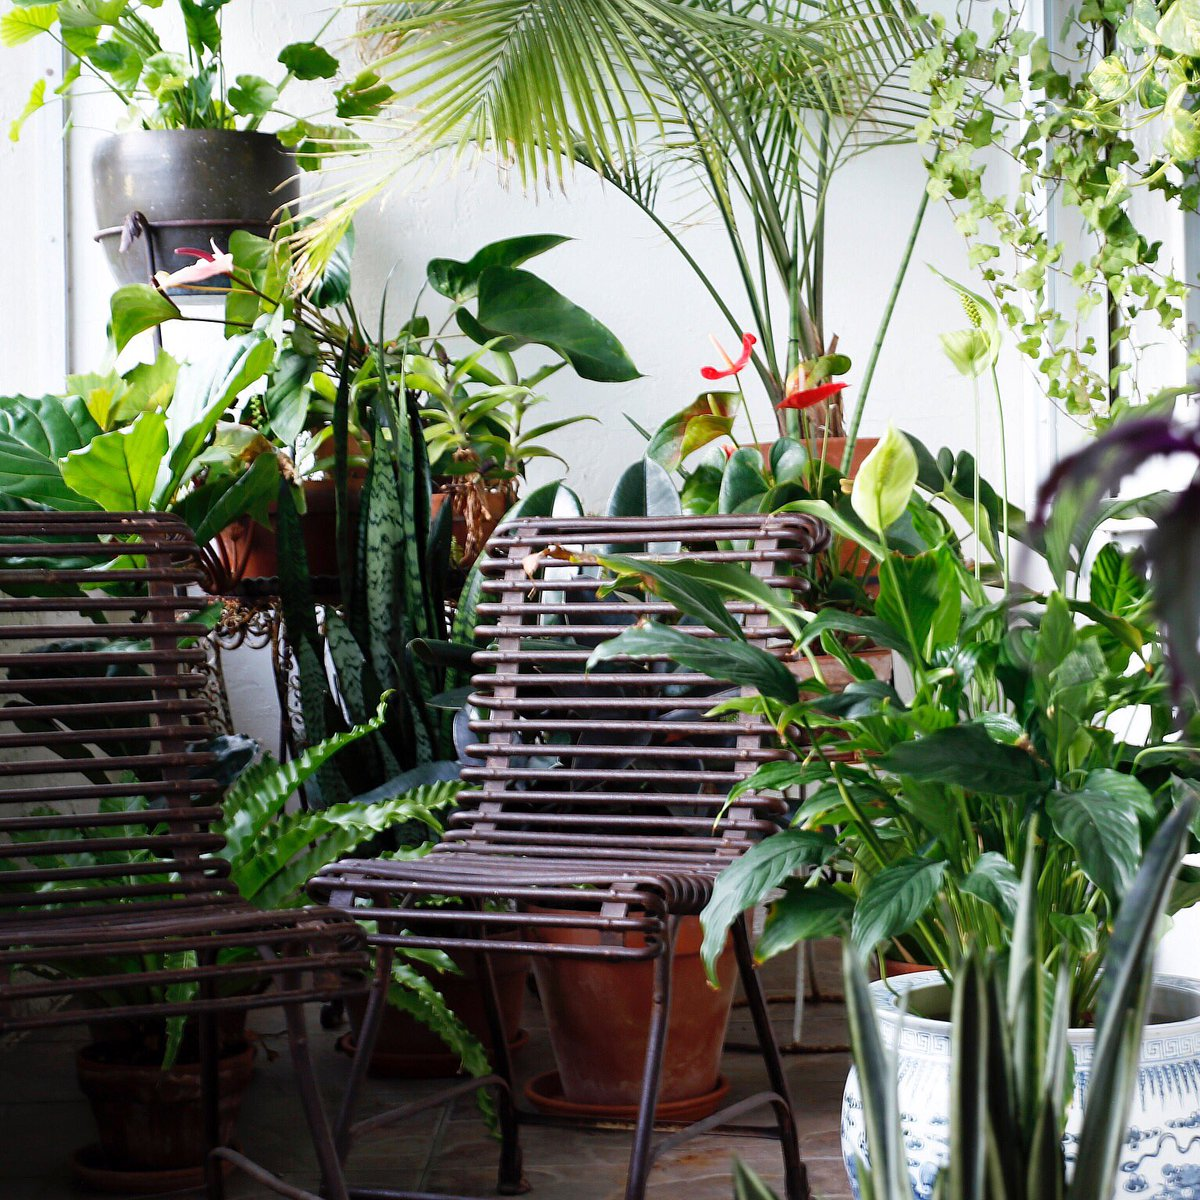 """""""Endless conversations with our plants."""" #antique #ironchairs #french #frenchironchairs #antiqueiron #decoratingwithplants #outdoorplants #balconyideaspic.twitter.com/CN4sASePWI"""